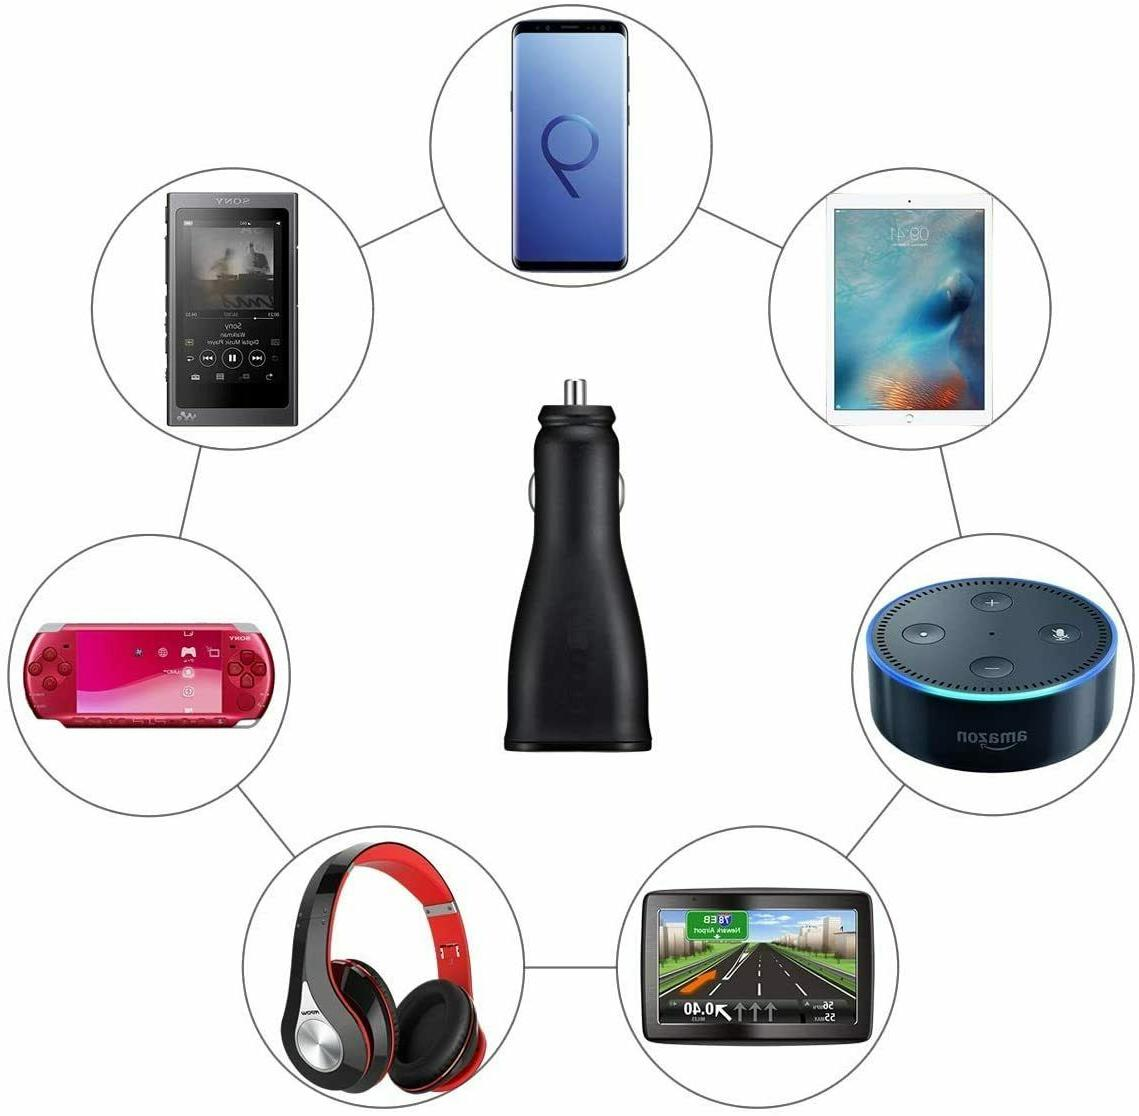 Original Samsung Car Charger iPhone/Android/Samsung Phone